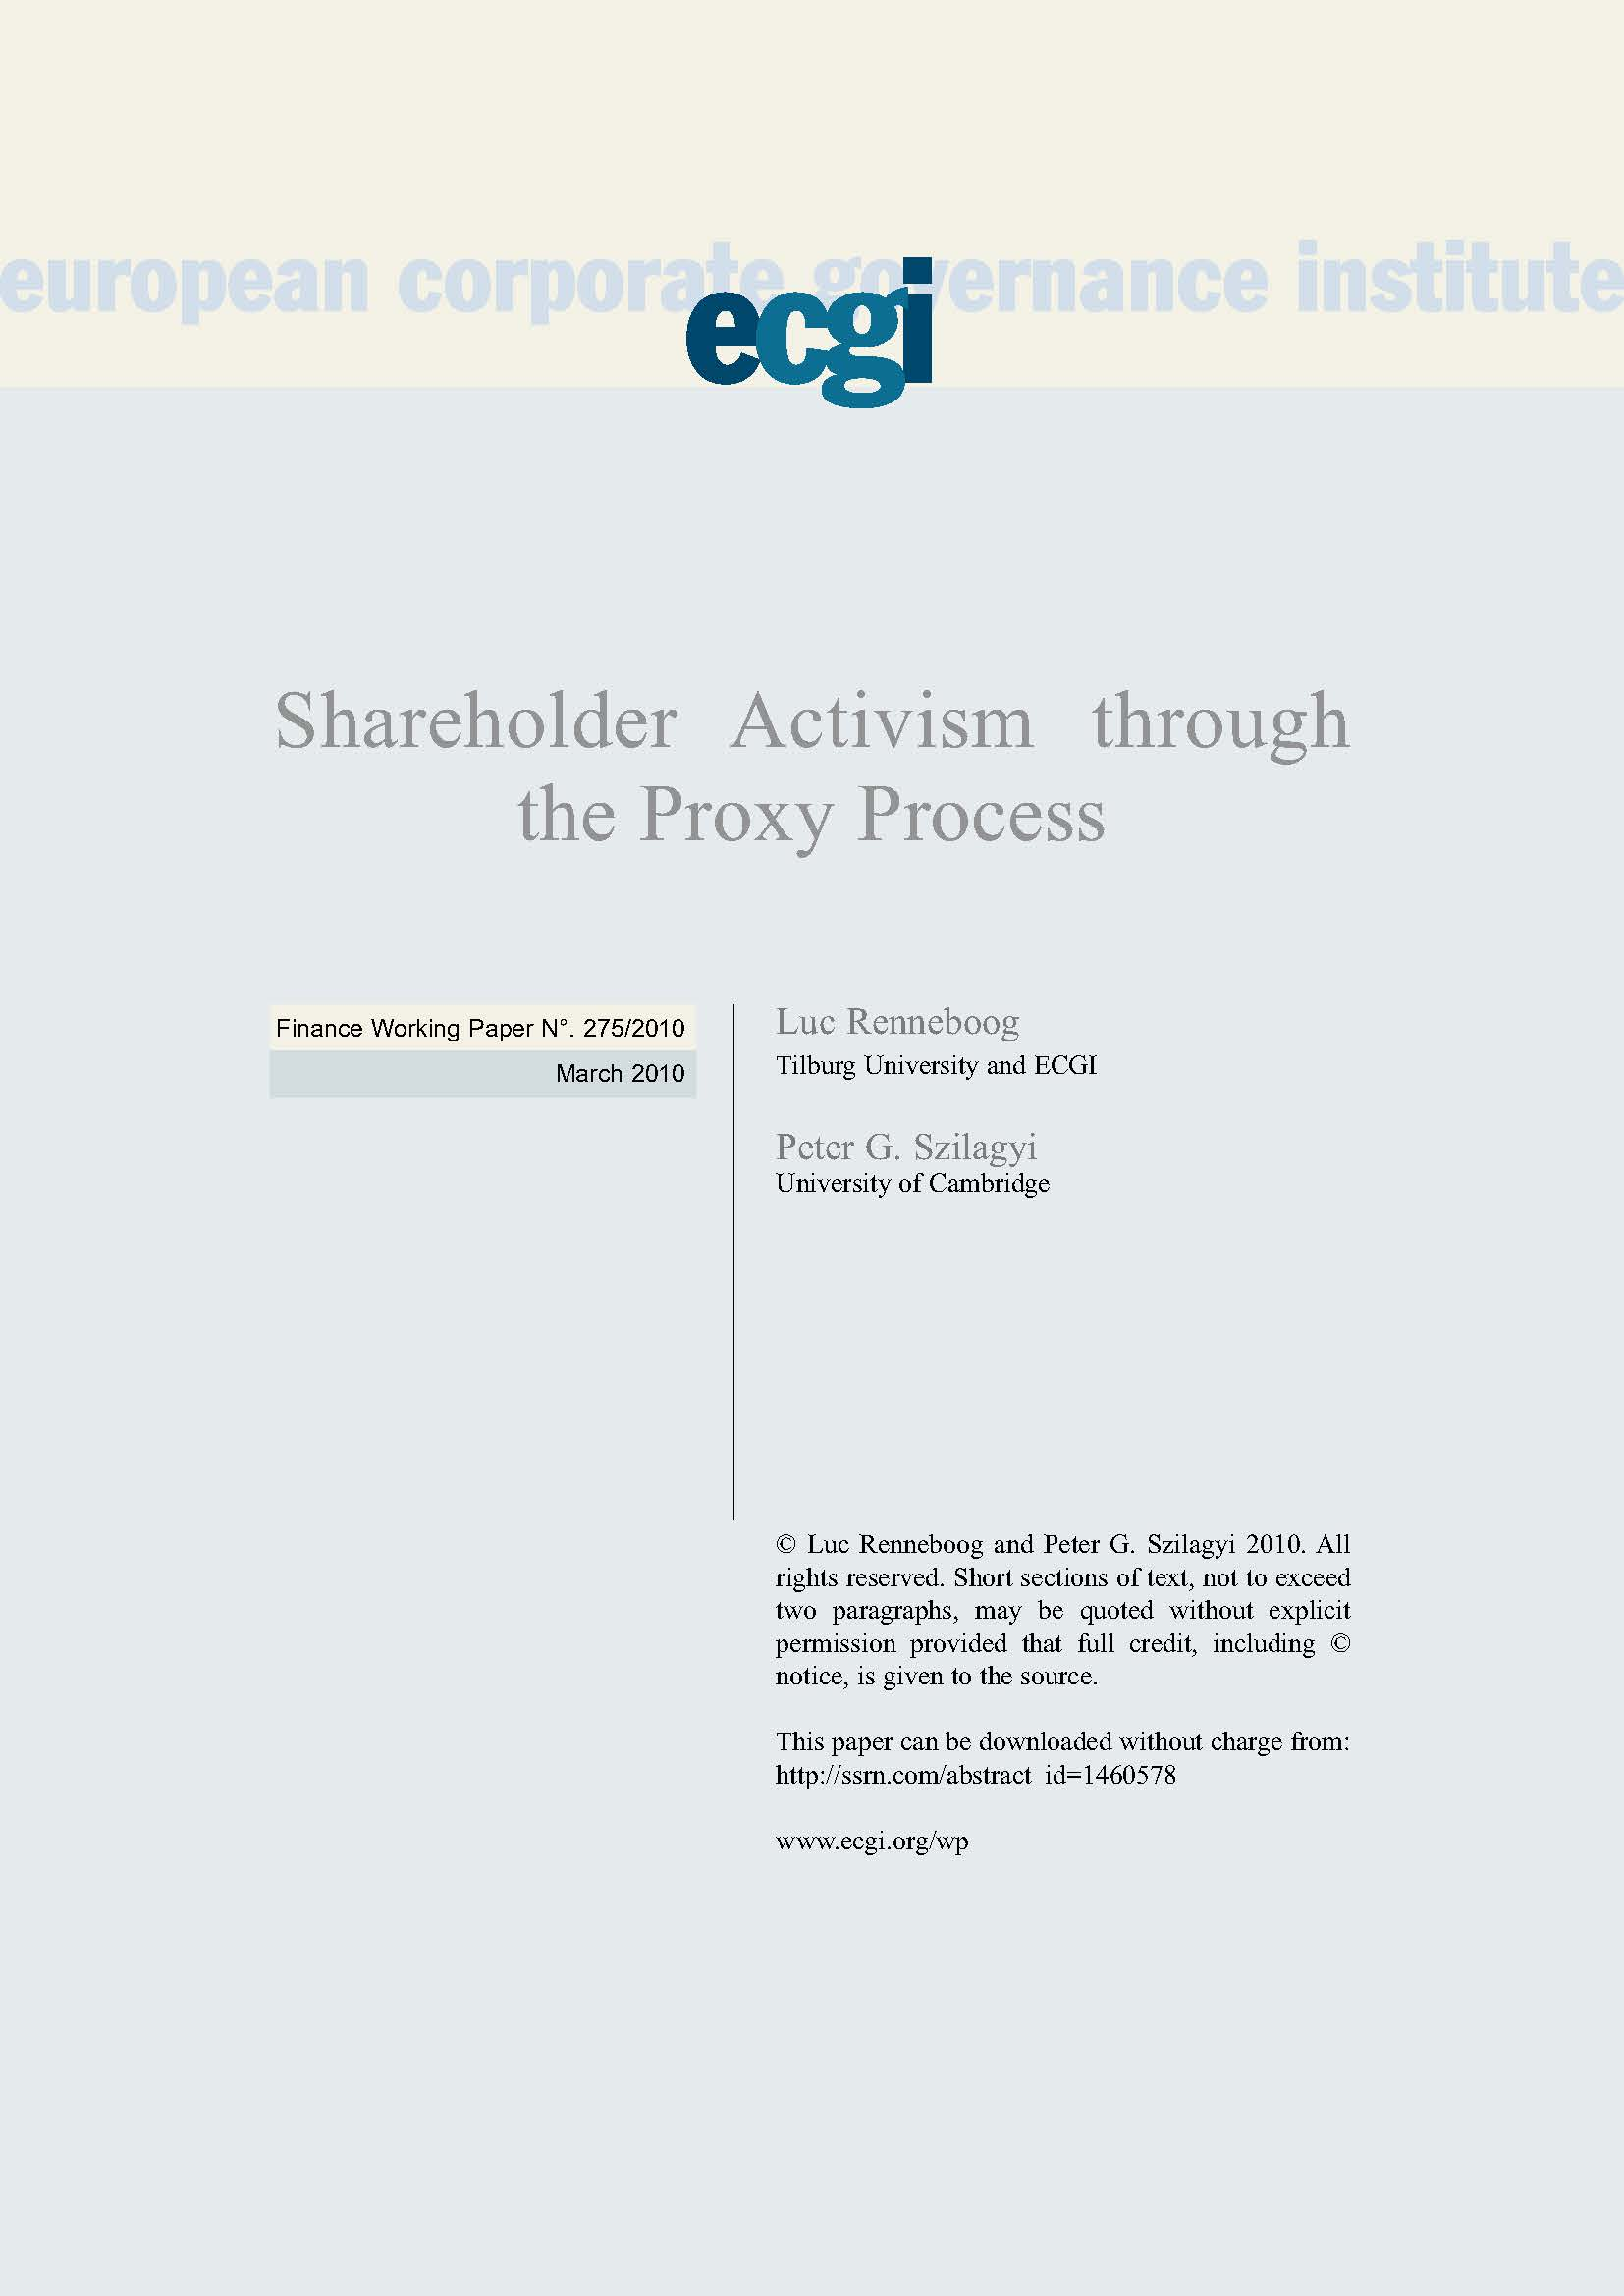 Shareholder Activism through the Proxy Process | ECGI